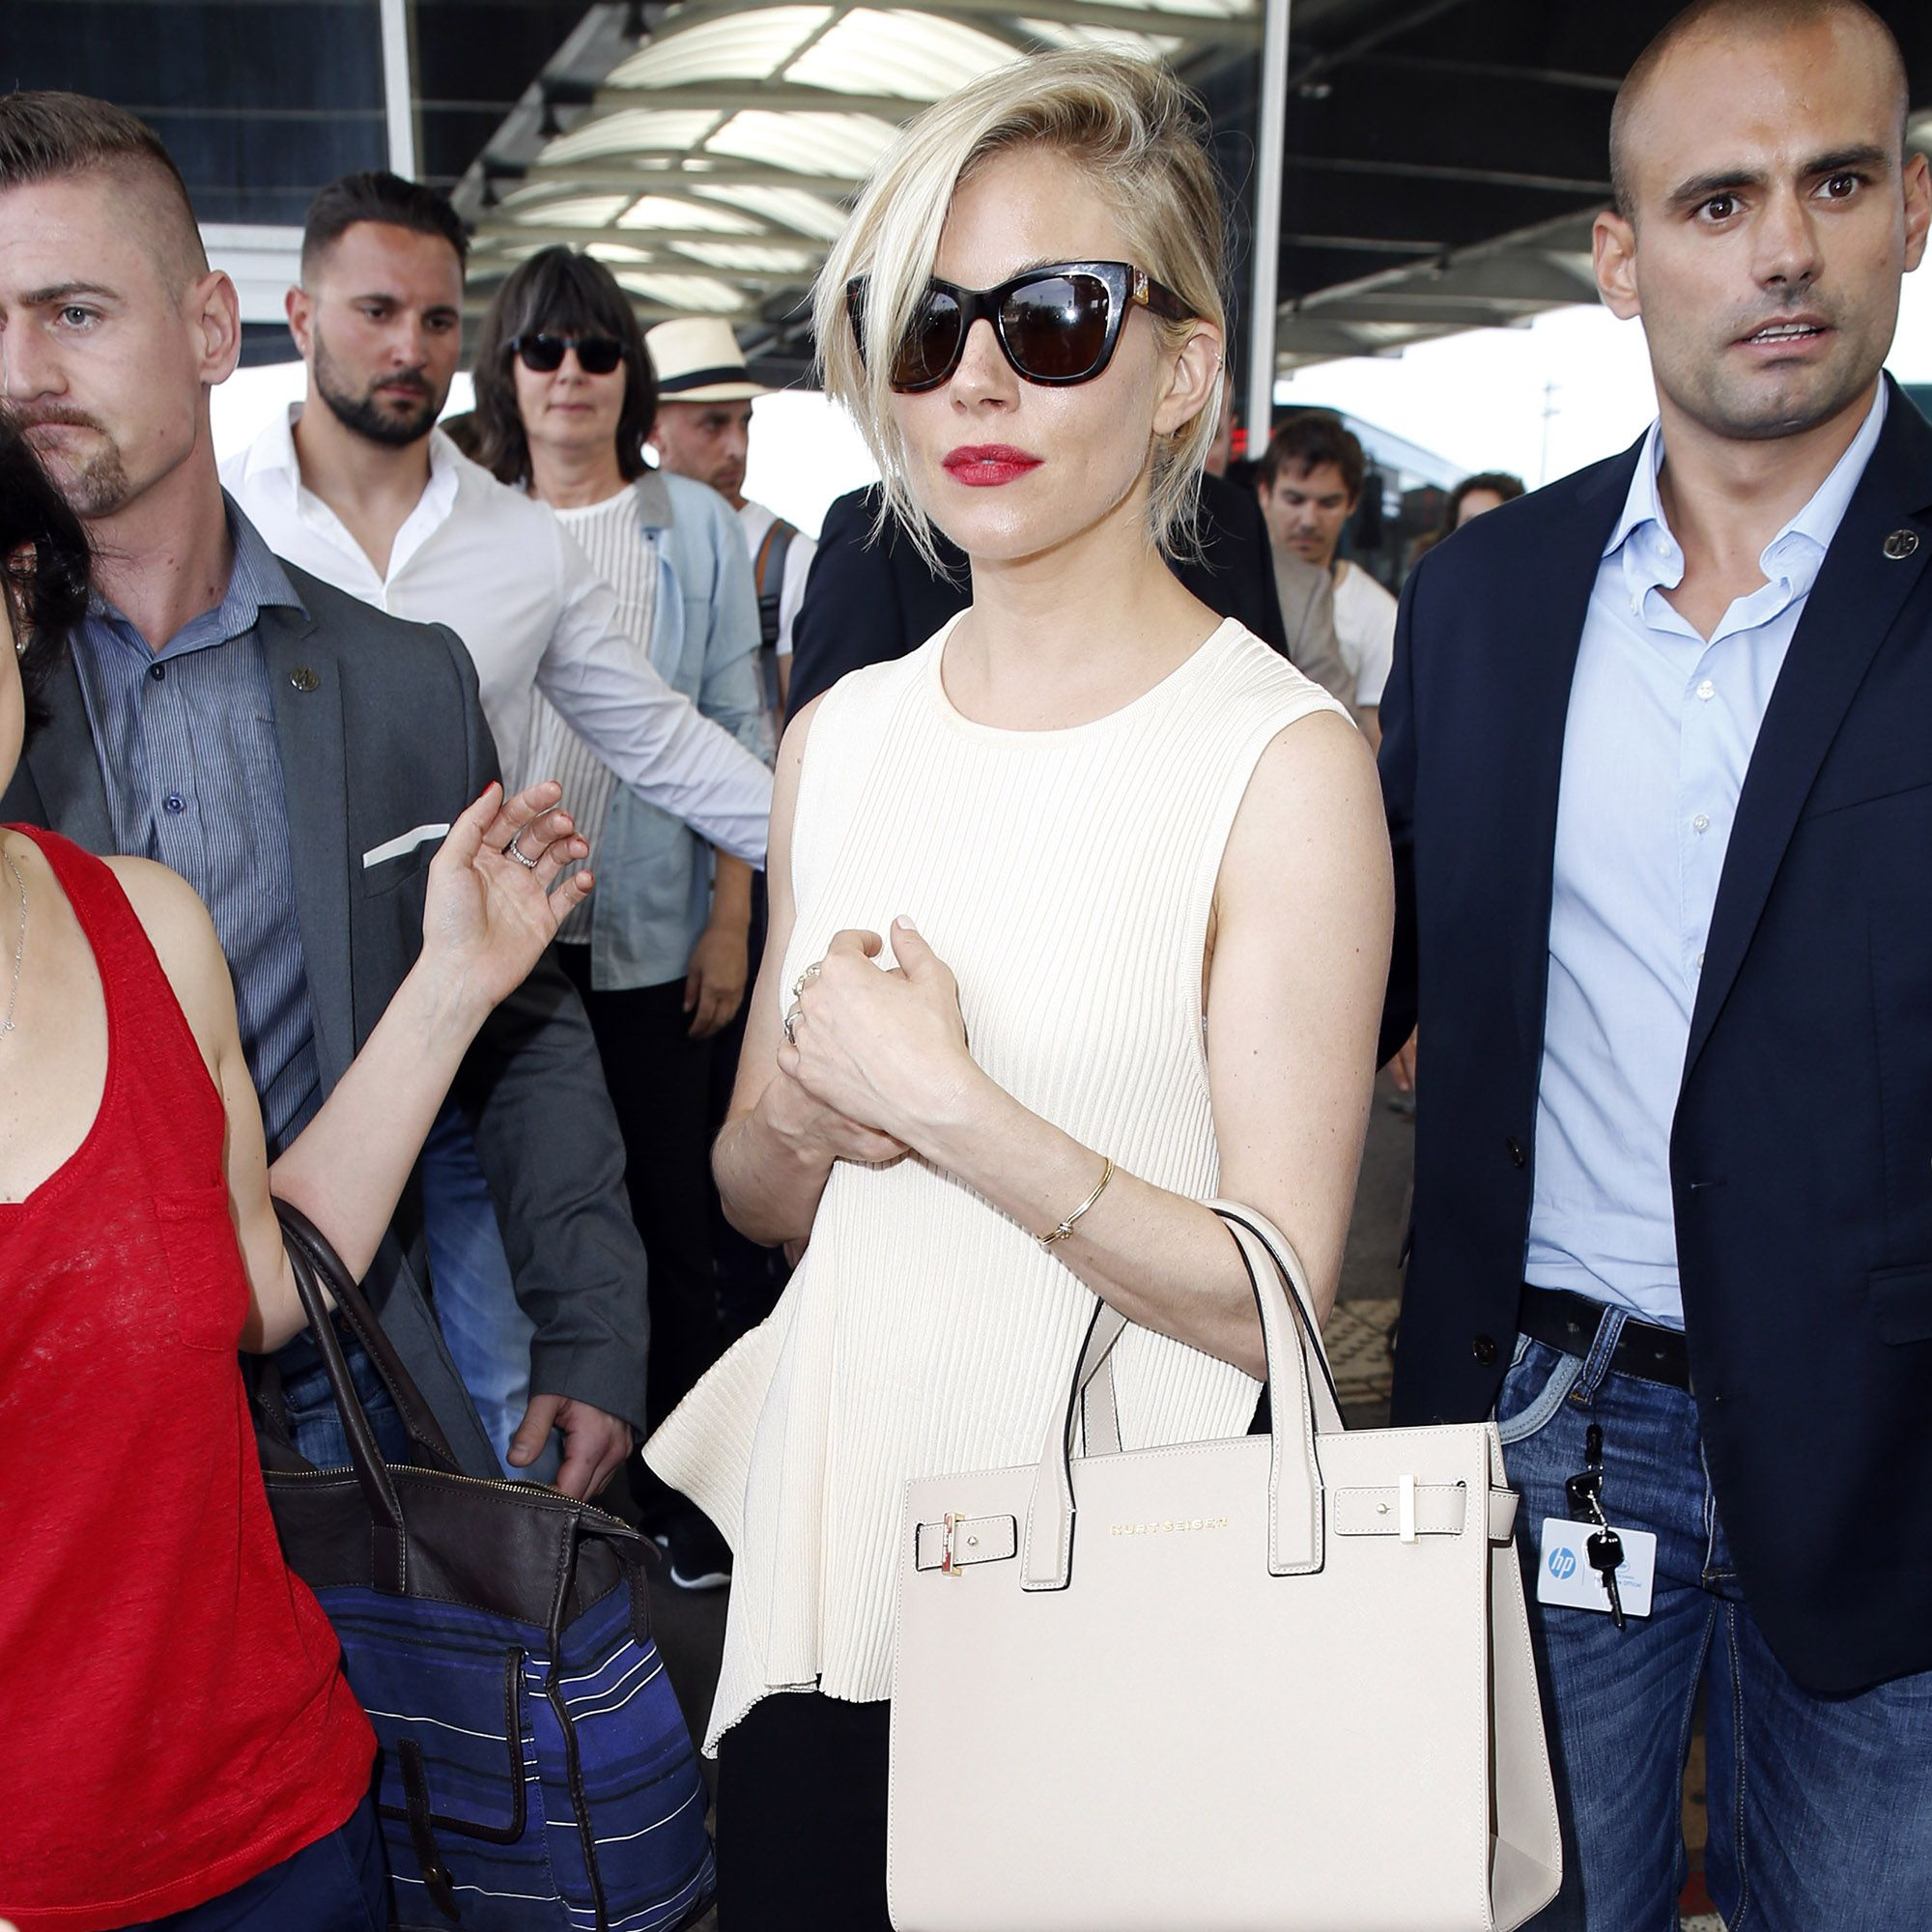 NICE, FRANCE - MAY 12: Sienna Miller sighted on May 12, 2015 in Nice, France. (Photo by Alex Huckle/Getty Images)